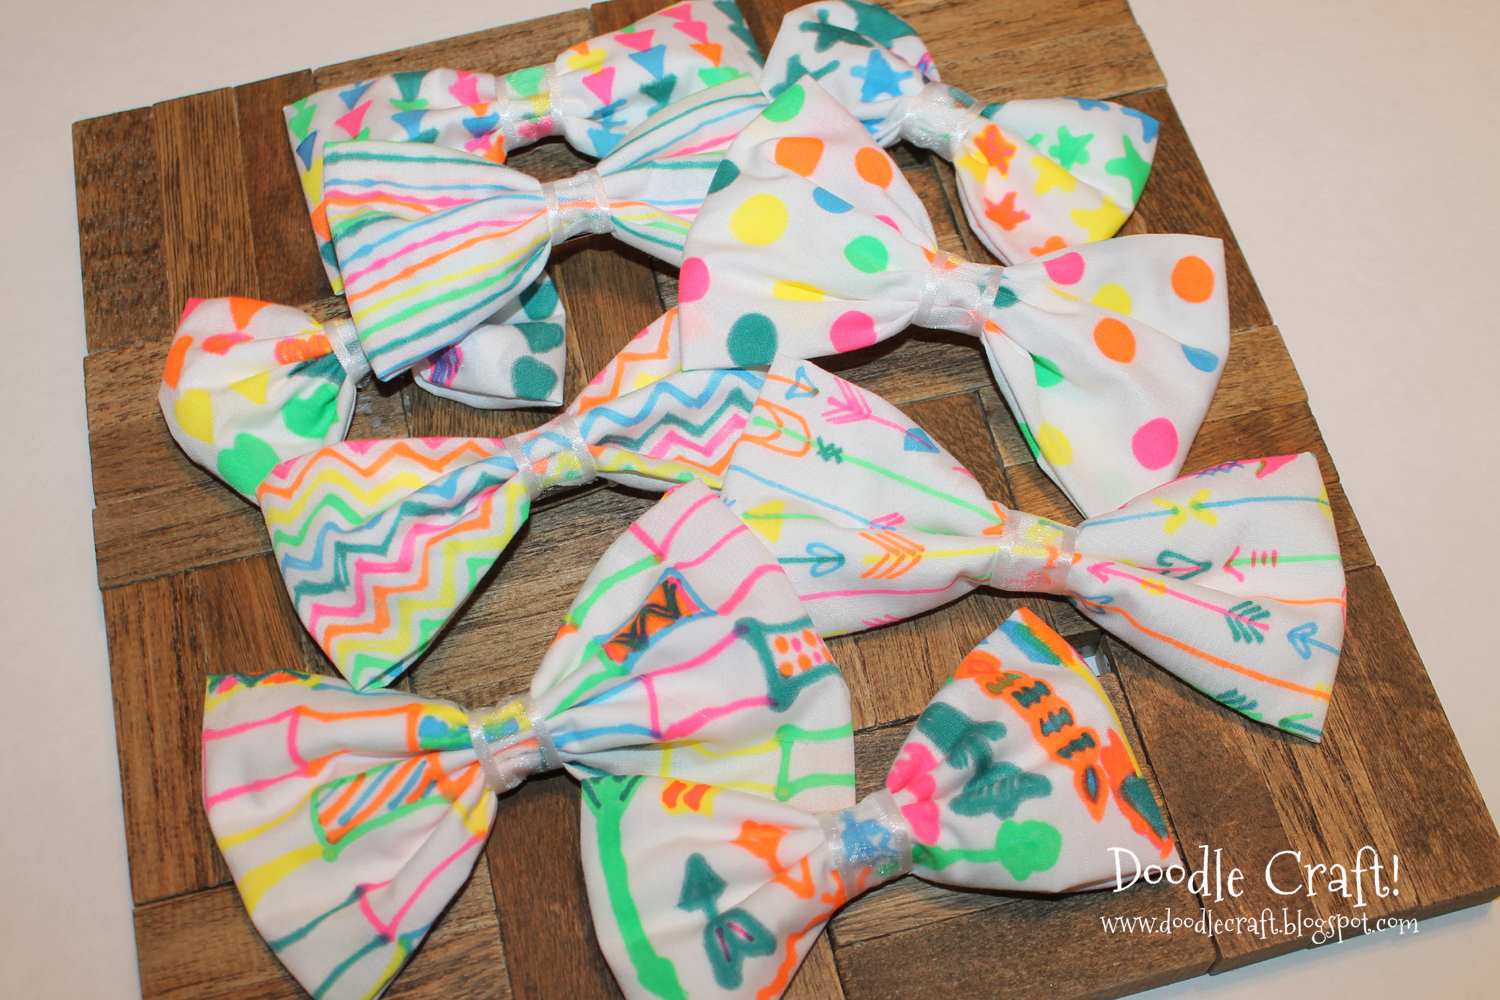 Doodlecraft neon sharpie hair bows hot glue gun week for Arts and crafts for 10 year old girls